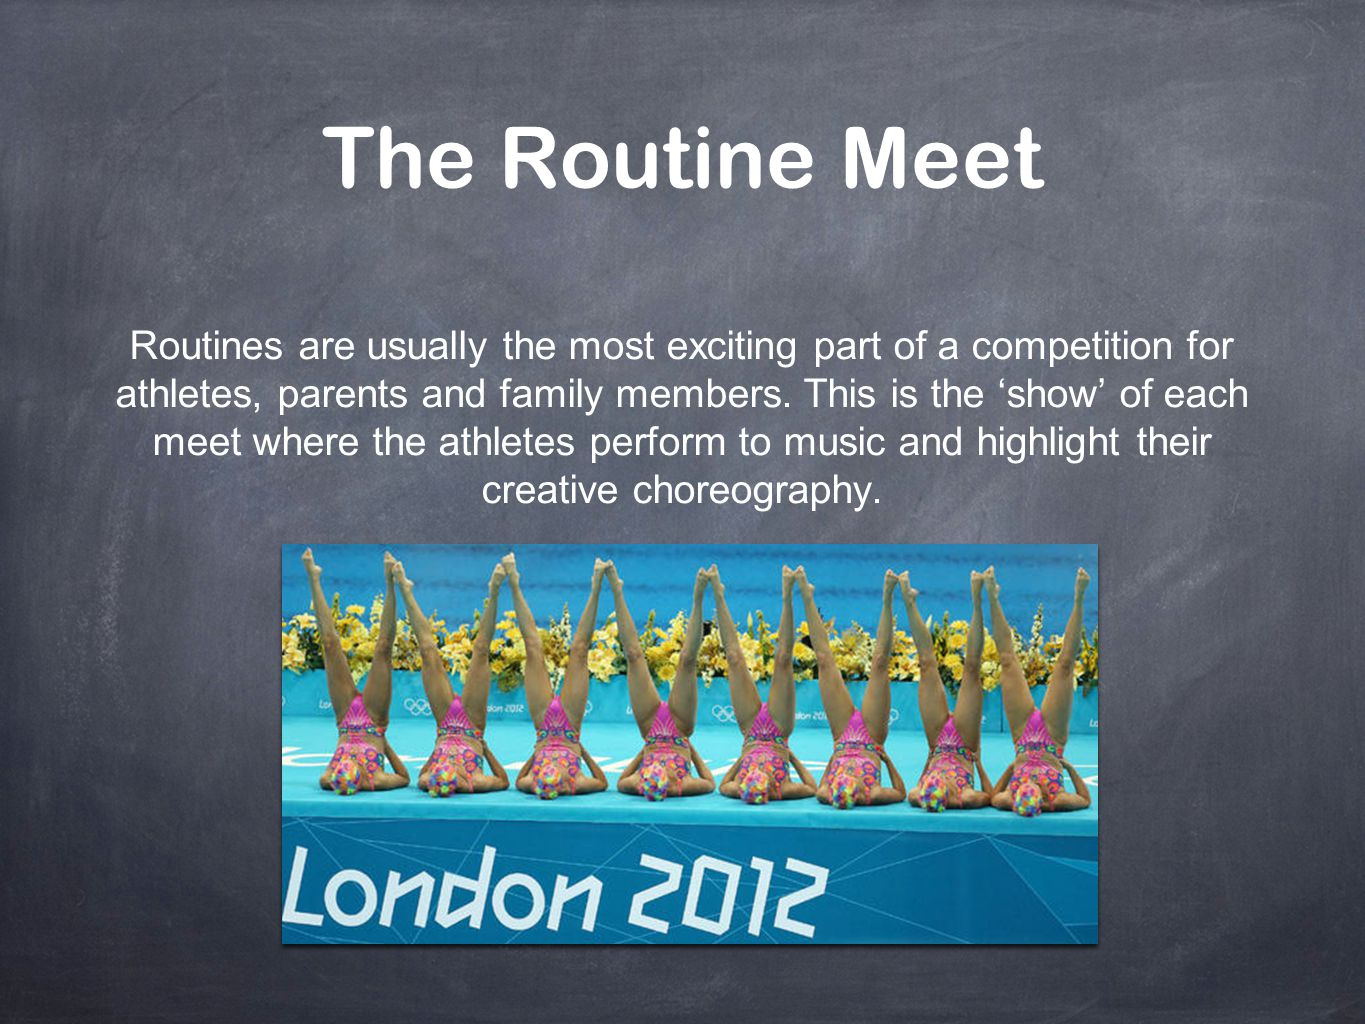 The Routine Meet